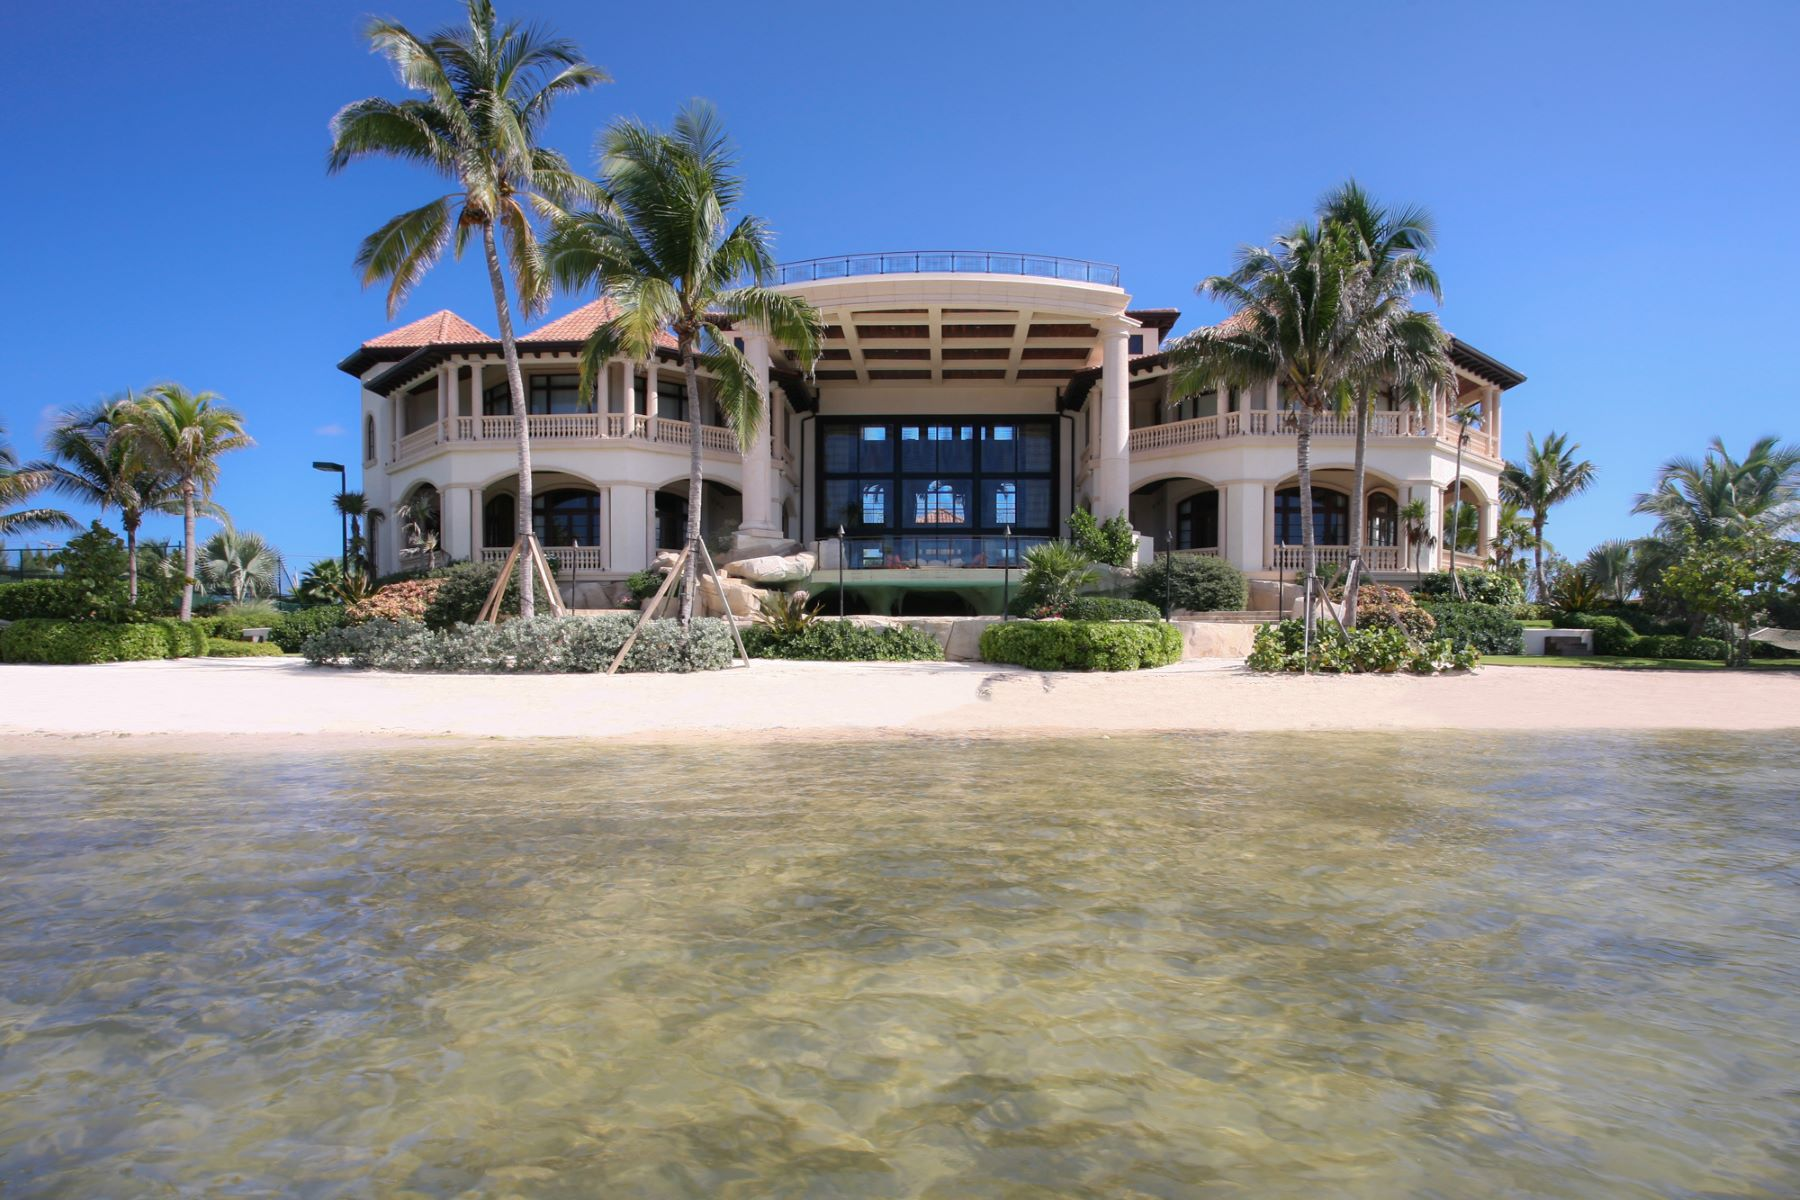 Tek Ailelik Ev için Satış at Castillo Caribe, Caribbean luxury real estate Castillo Caribe South Sound Rd George Town, Grand Cayman, KY1 Cayman Adalari